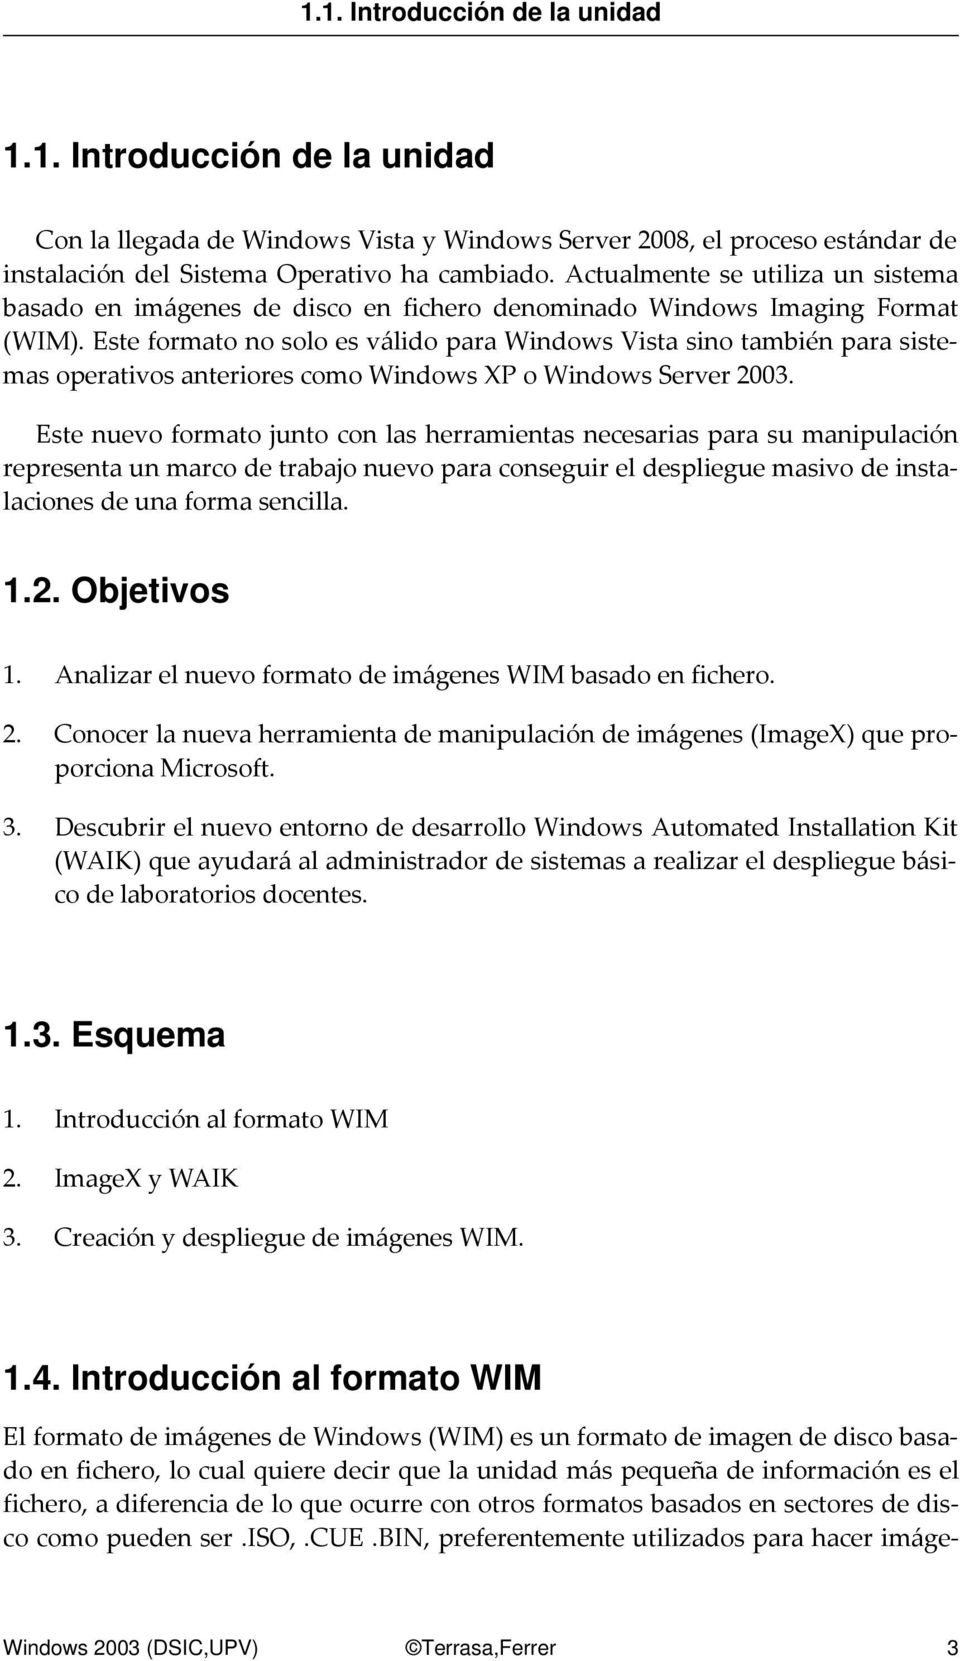 Este formato no solo es válido para Windows Vista sino también para sistemas operativos anteriores como Windows XP o Windows Server 2003.